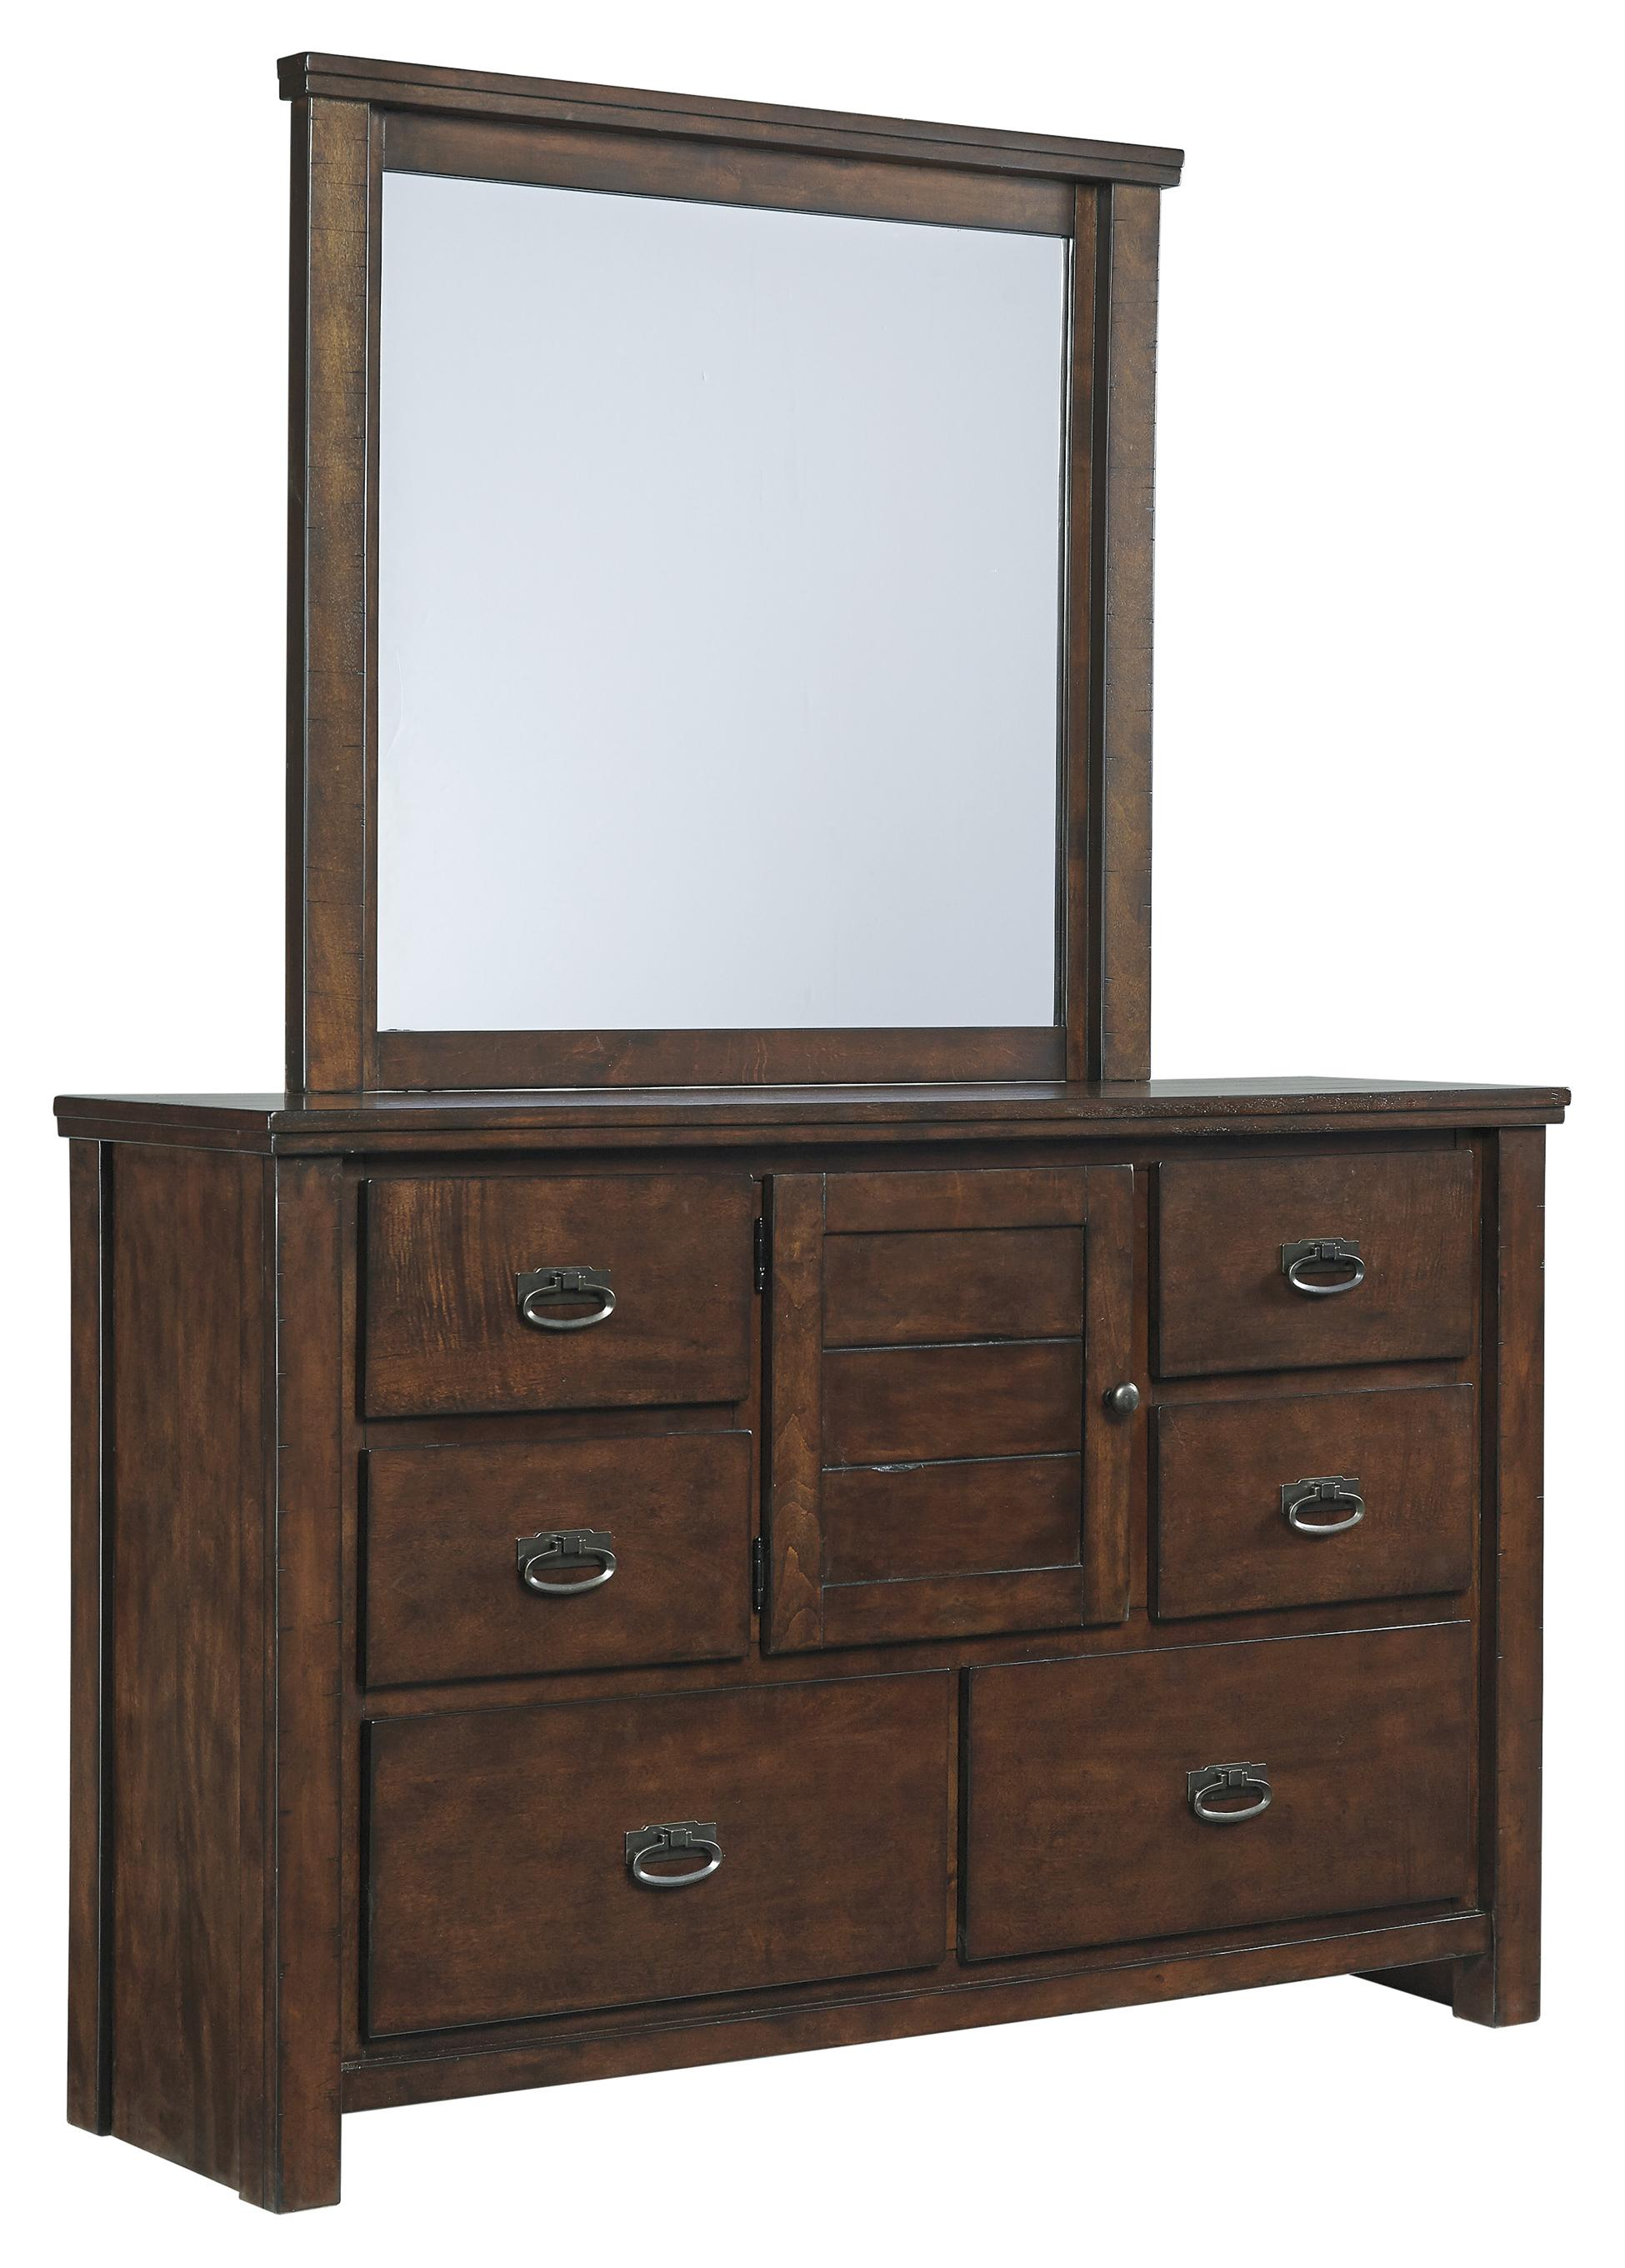 Signature Design by Ashley Ladiville Bedroom Dresser & Mirror - Item Number: B567-21+26